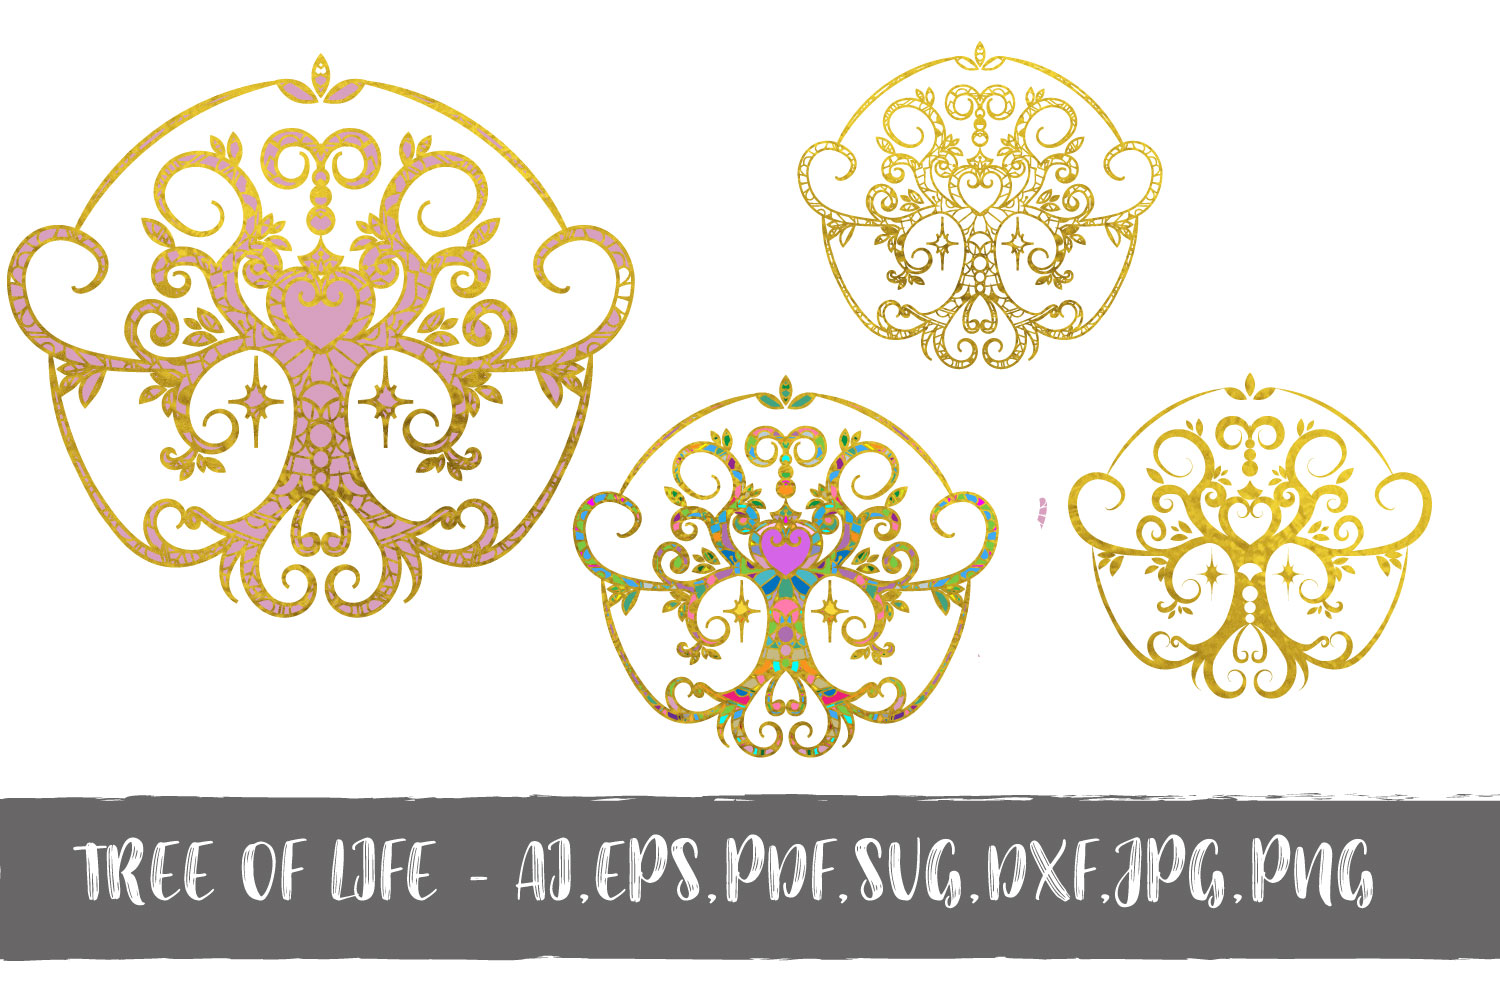 Download Free Tree Of Life Pack Graphic By Sintegra Creative Fabrica for Cricut Explore, Silhouette and other cutting machines.